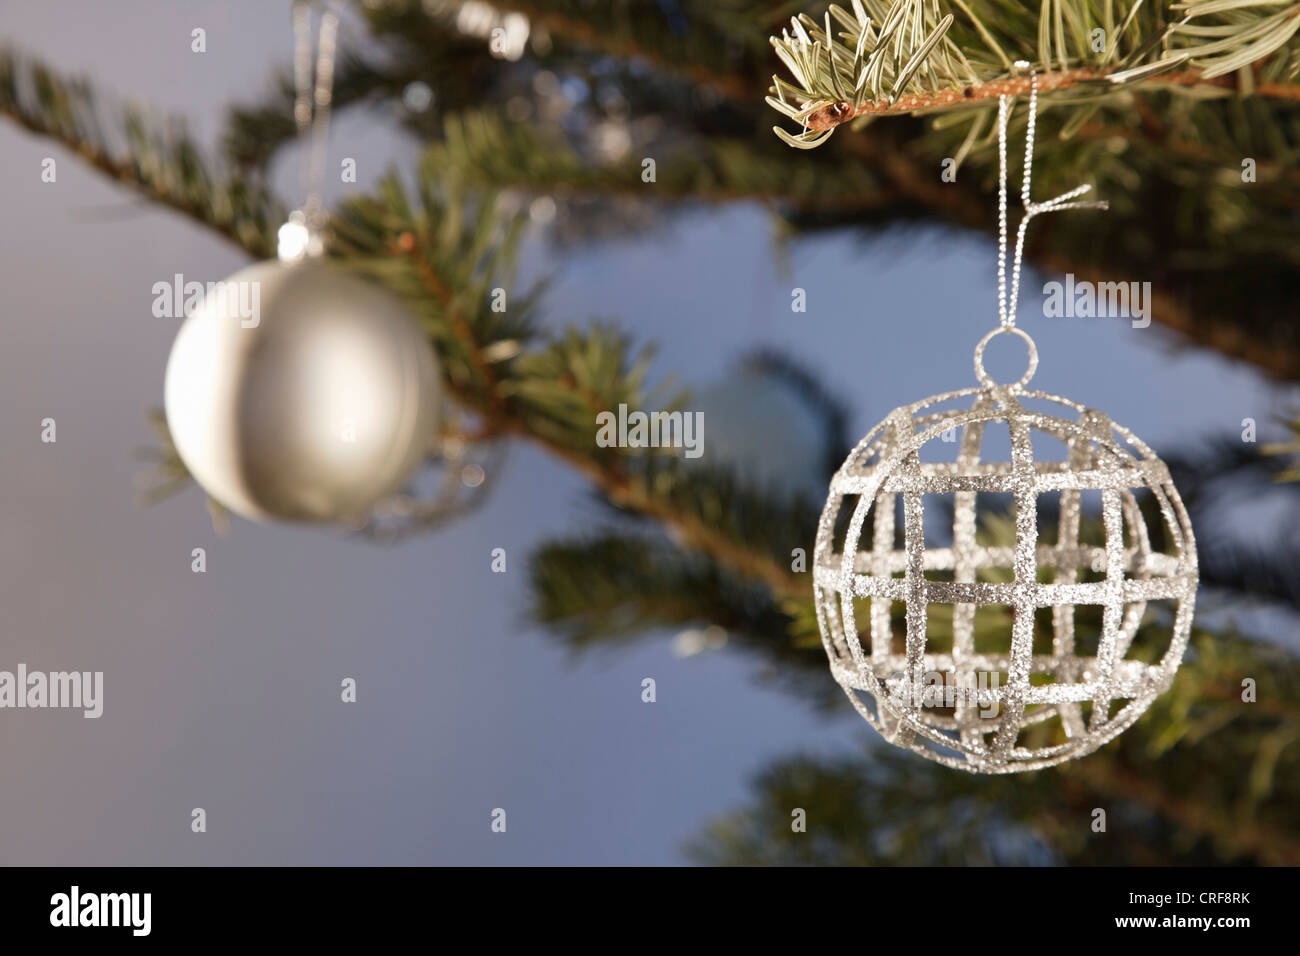 Close up of ornament on Christmas tree - Stock Image